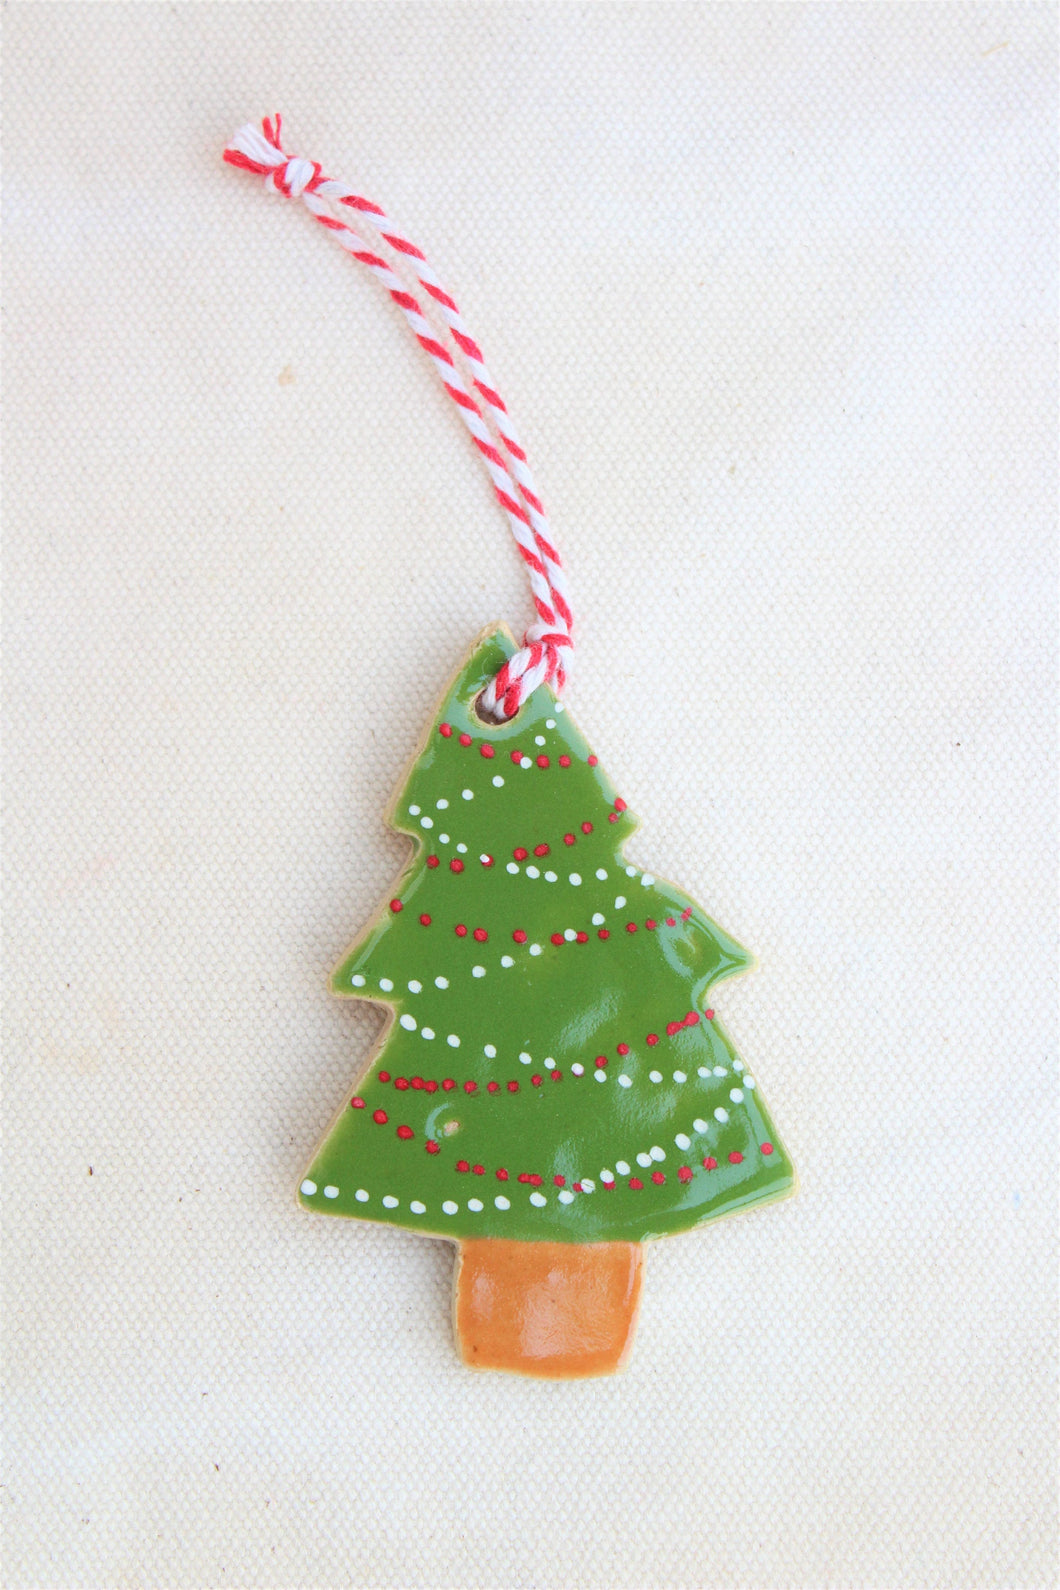 Christmas Ornament - Ceramic Tree with Lights